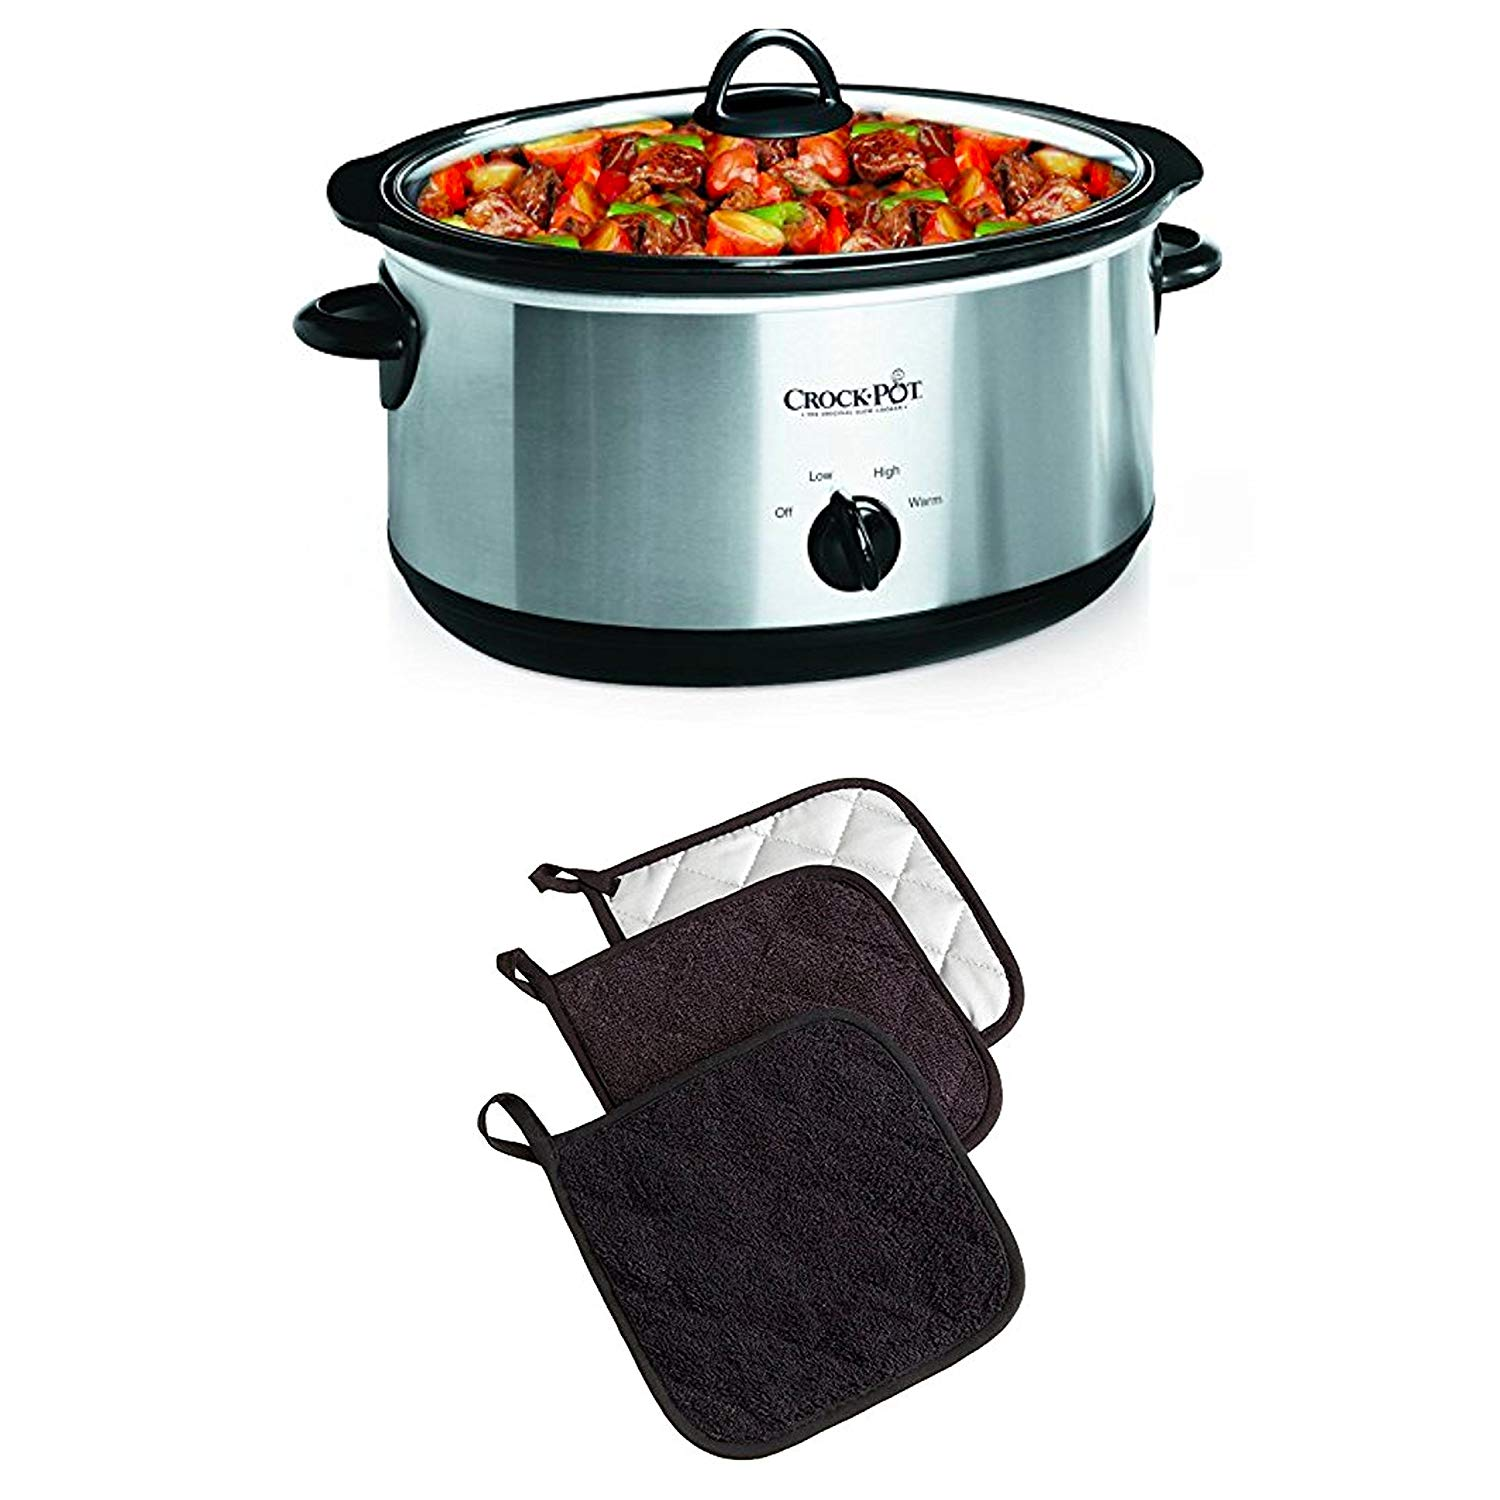 "Bundle Includes 2 Items - Crock-Pot 7-Quart Oval Manual Slow Cooker, Stainless Steel (SCV700SS) and DII Cotton Terry Pot Holders, 7x7"" Set of 3, Heat Resistant and Machine Washable Hot Pads for"